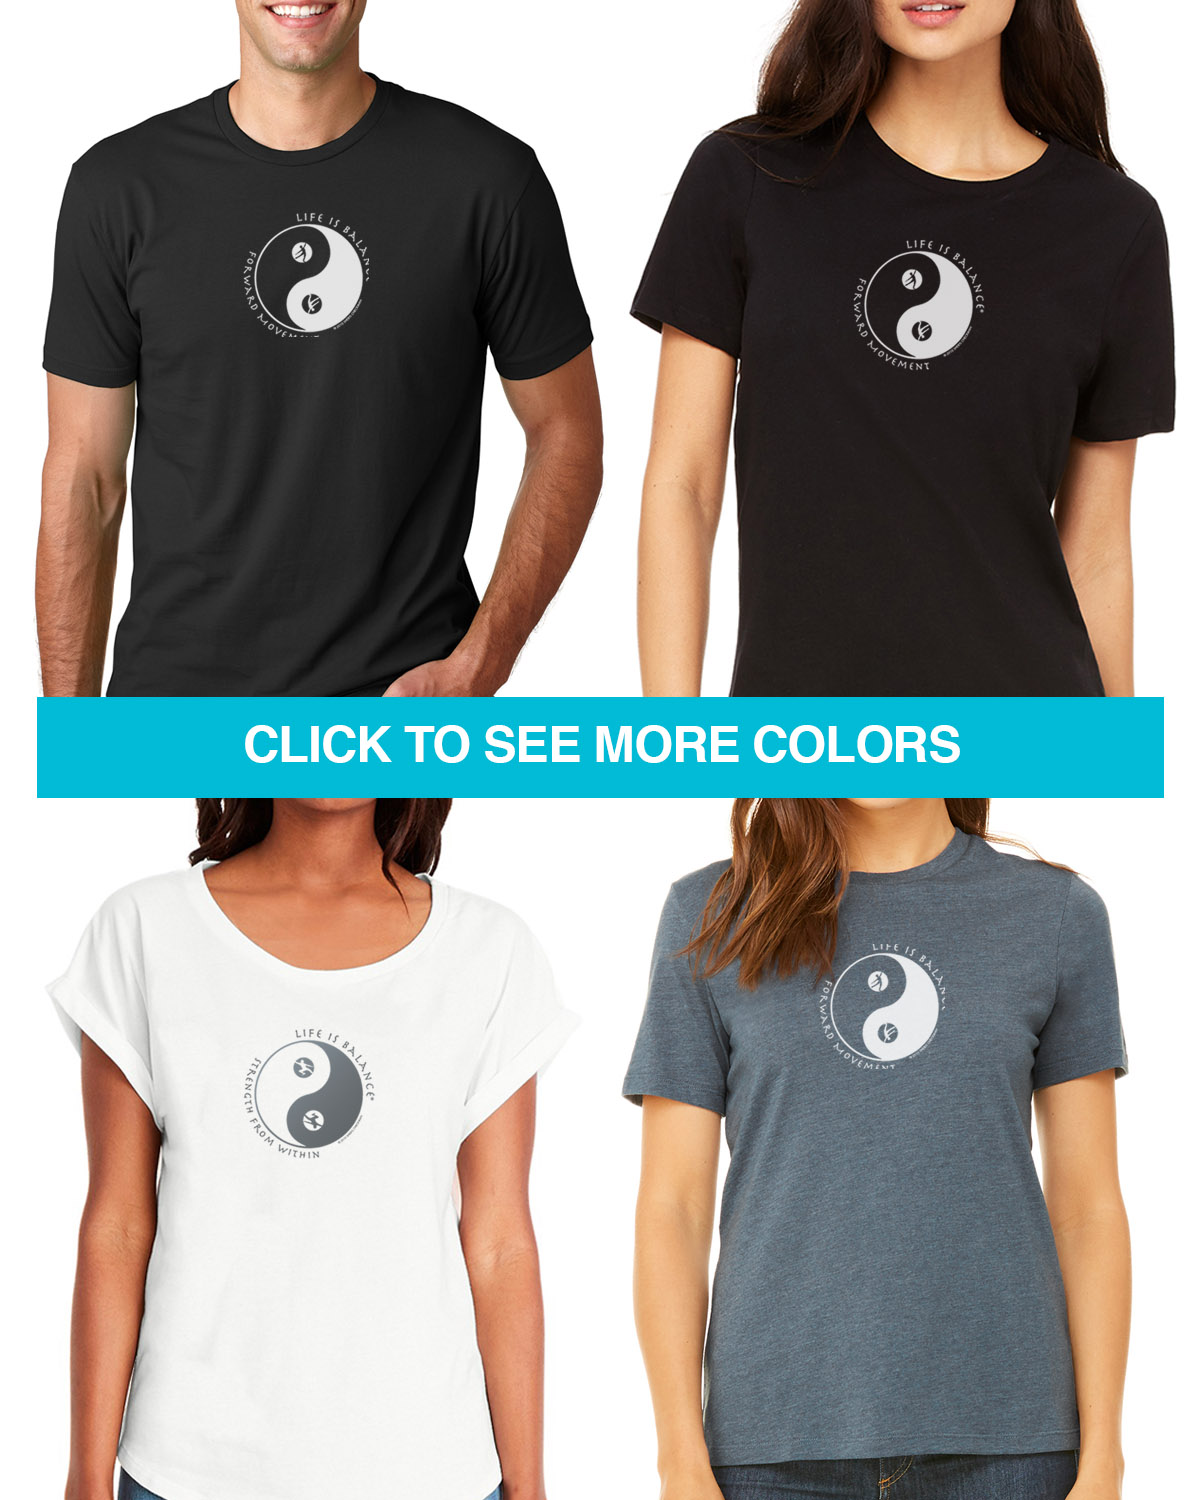 Dance t-shirts for Men and Women